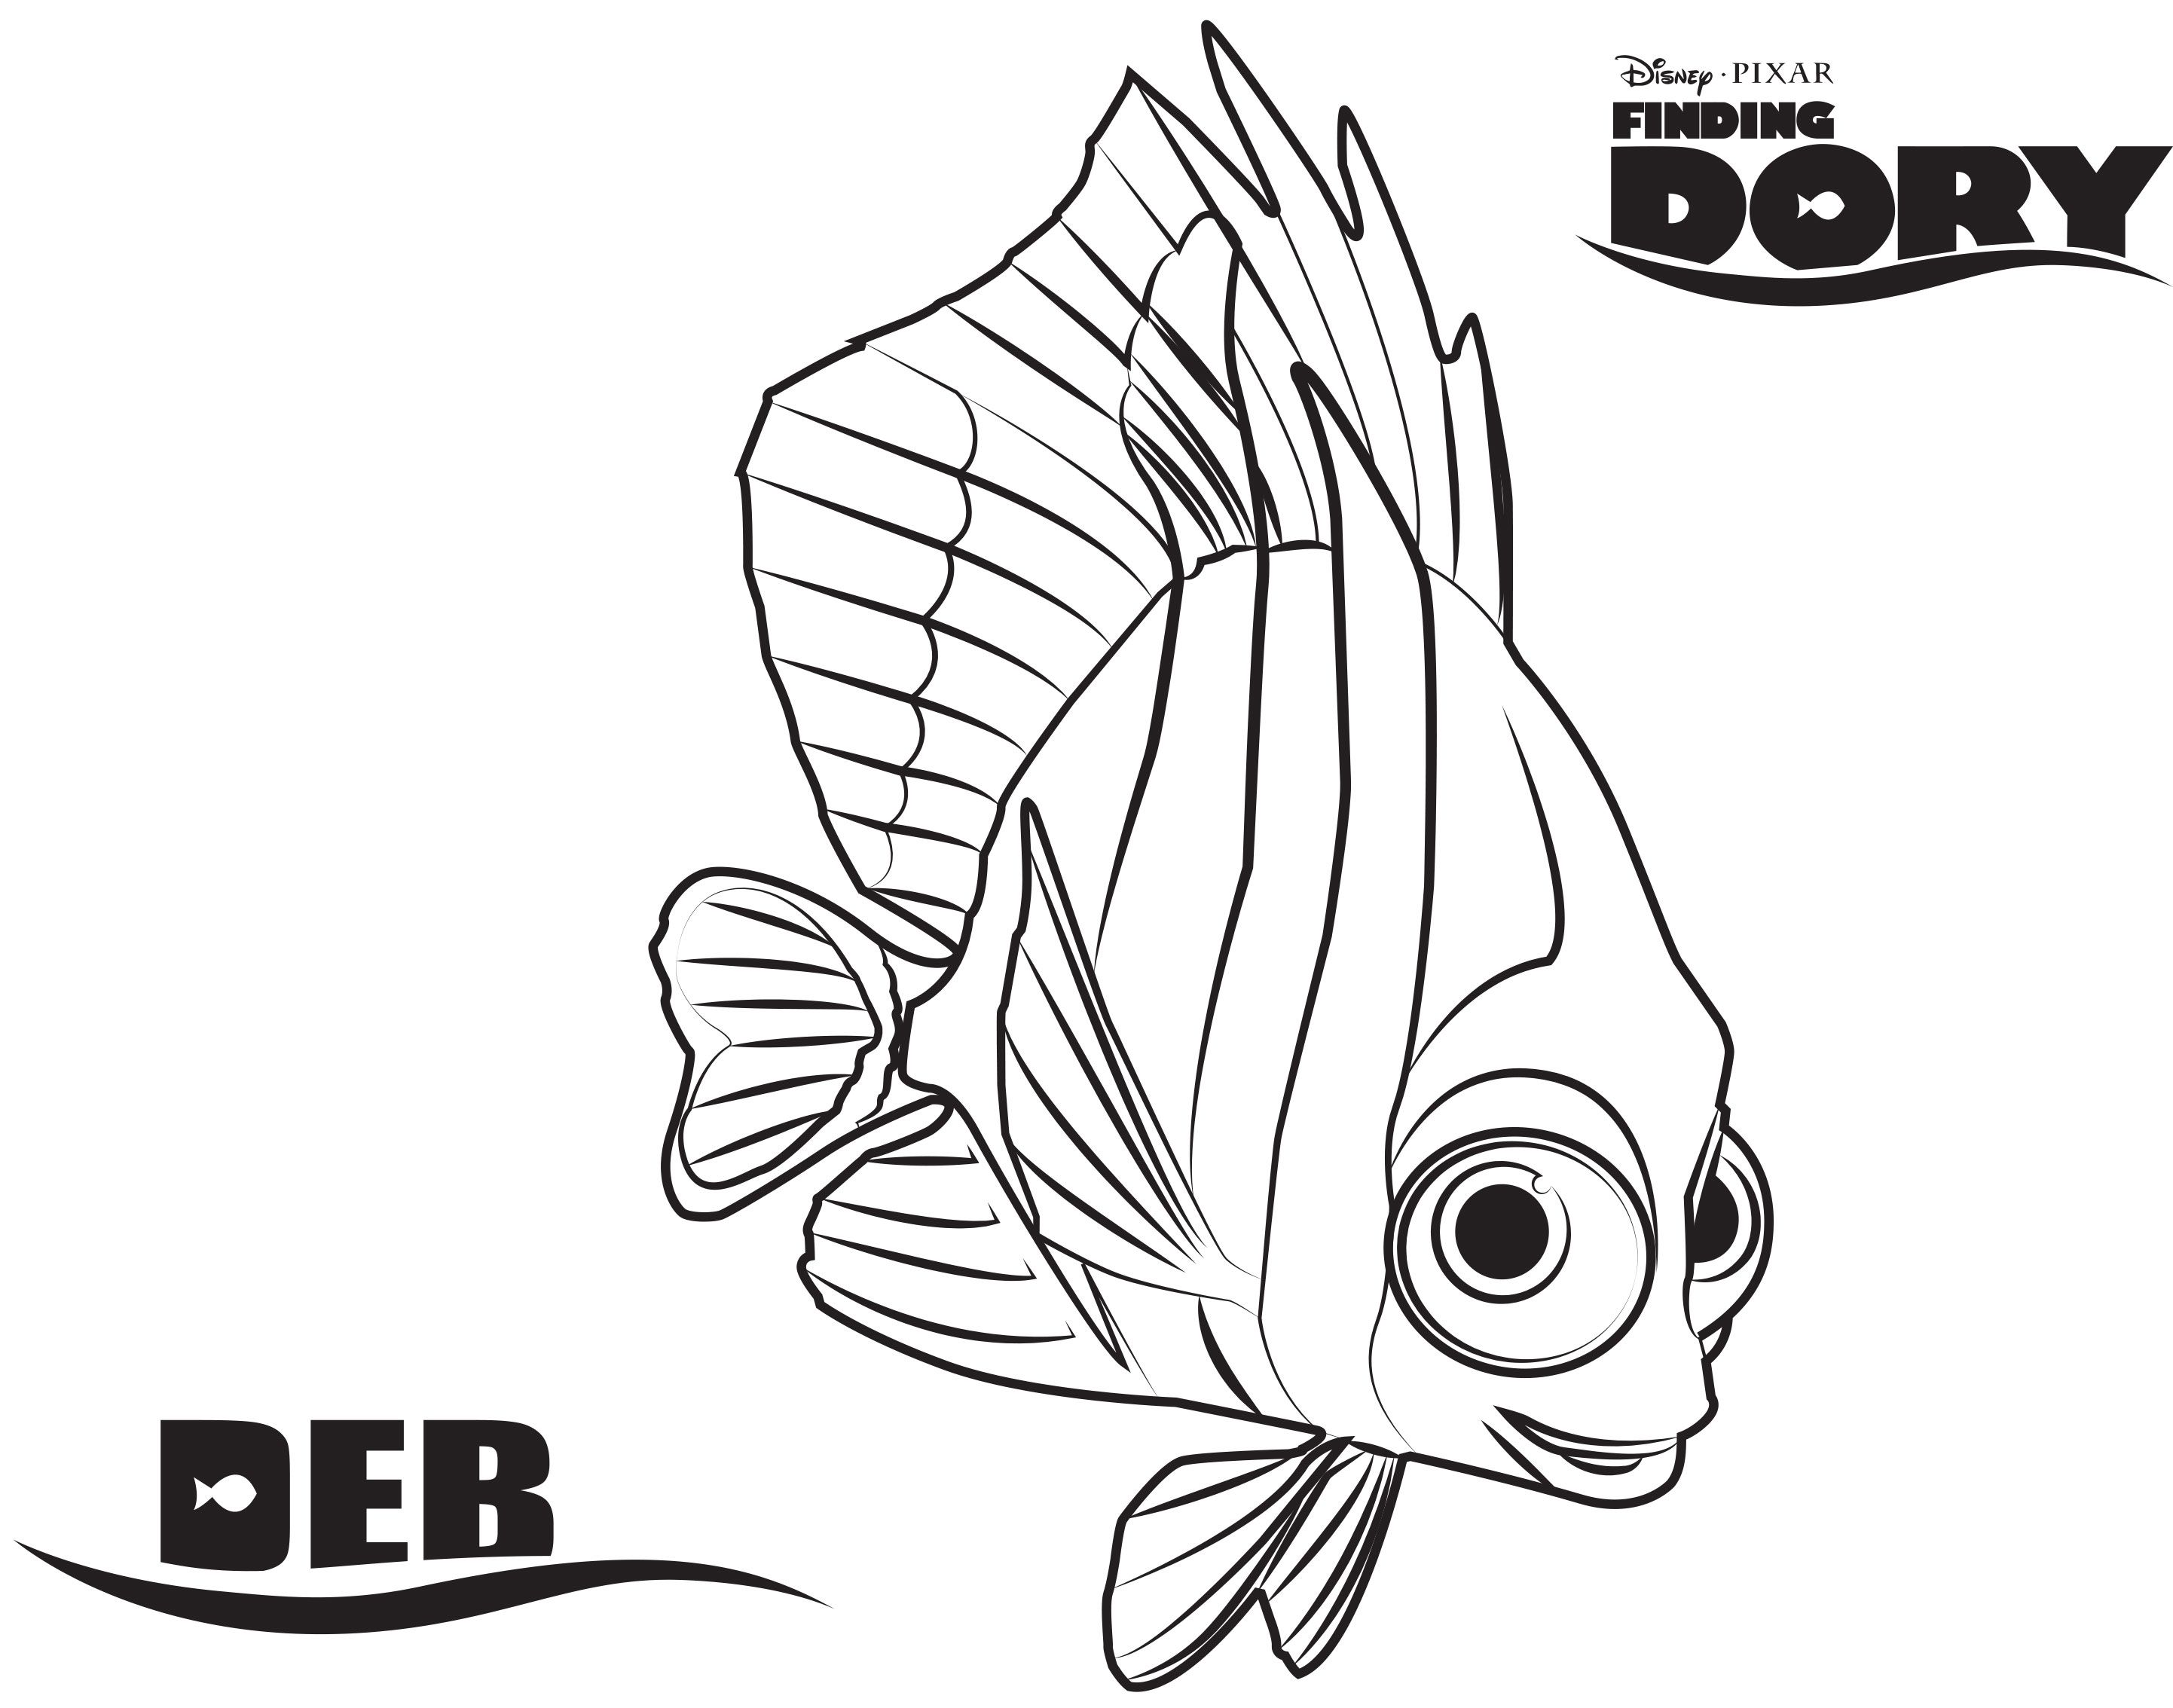 2884x2267 Disney's Finding Dory Coloring Pages Sheet, Free Disney Printable